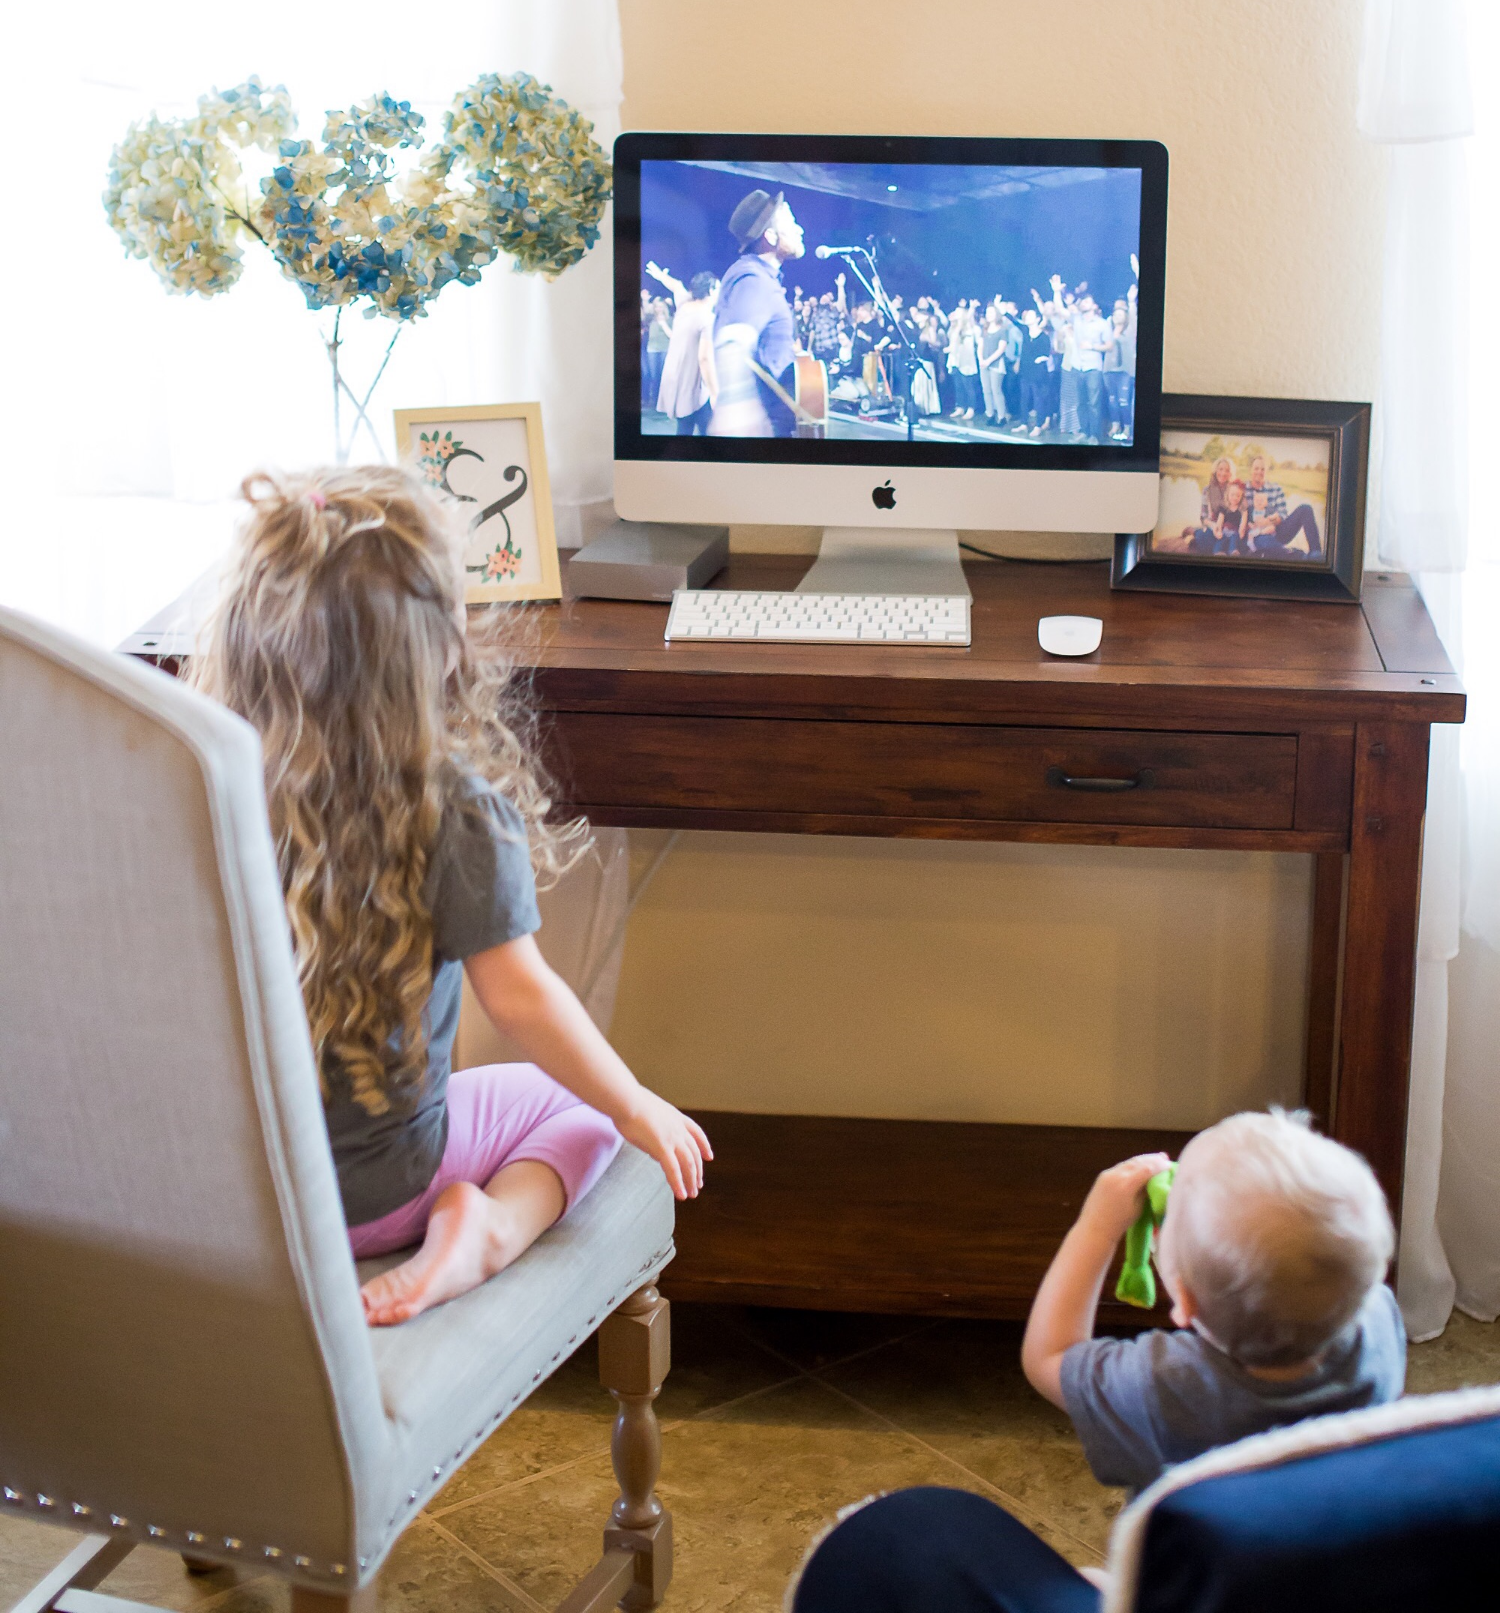 Ok, so both my kids love watching the music videos. Proud Daddy!